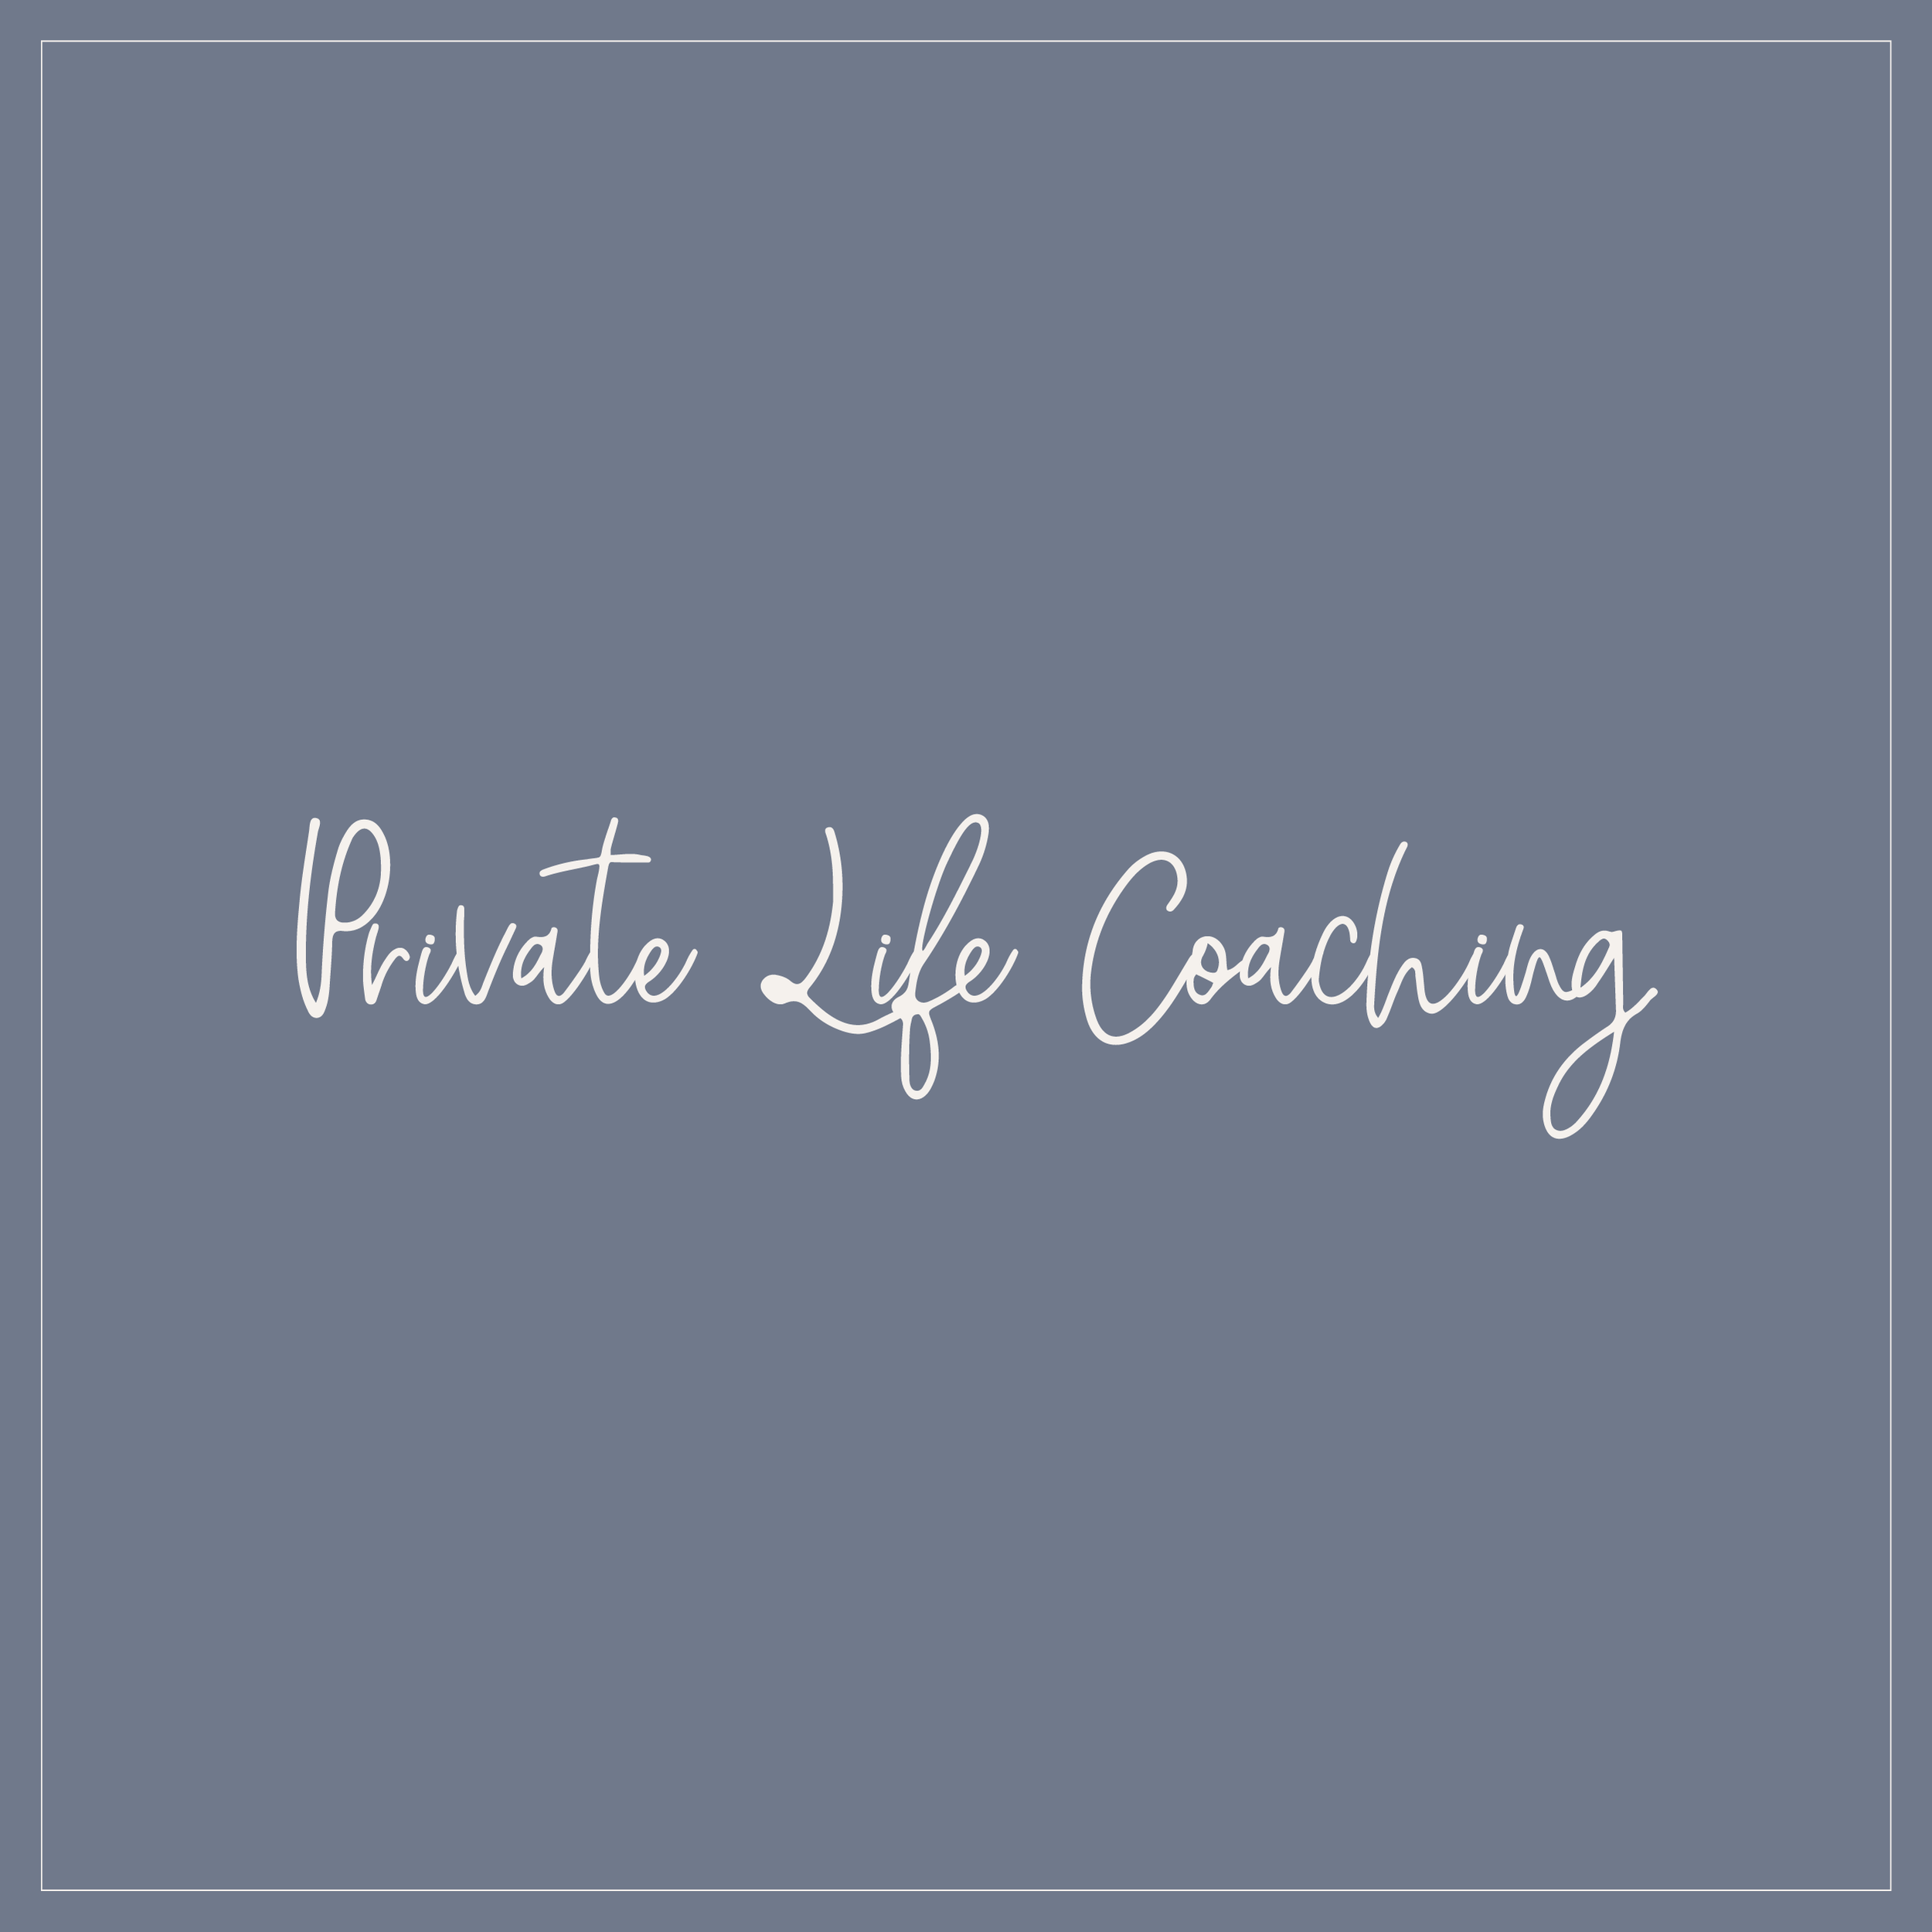 - Coaching is about creating clarity in your life and taking action. Coaching is results driven. As your coach I am here to support and empower you to find more joy and to create a happier, more fulfilling life. I will help you bridge the gap between where you are now and where you want to be so you can live an empowered life that you love. I support my clients in meeting their desired goals and producing amazing results. We can work together to create the extraordinary life that you want to live.